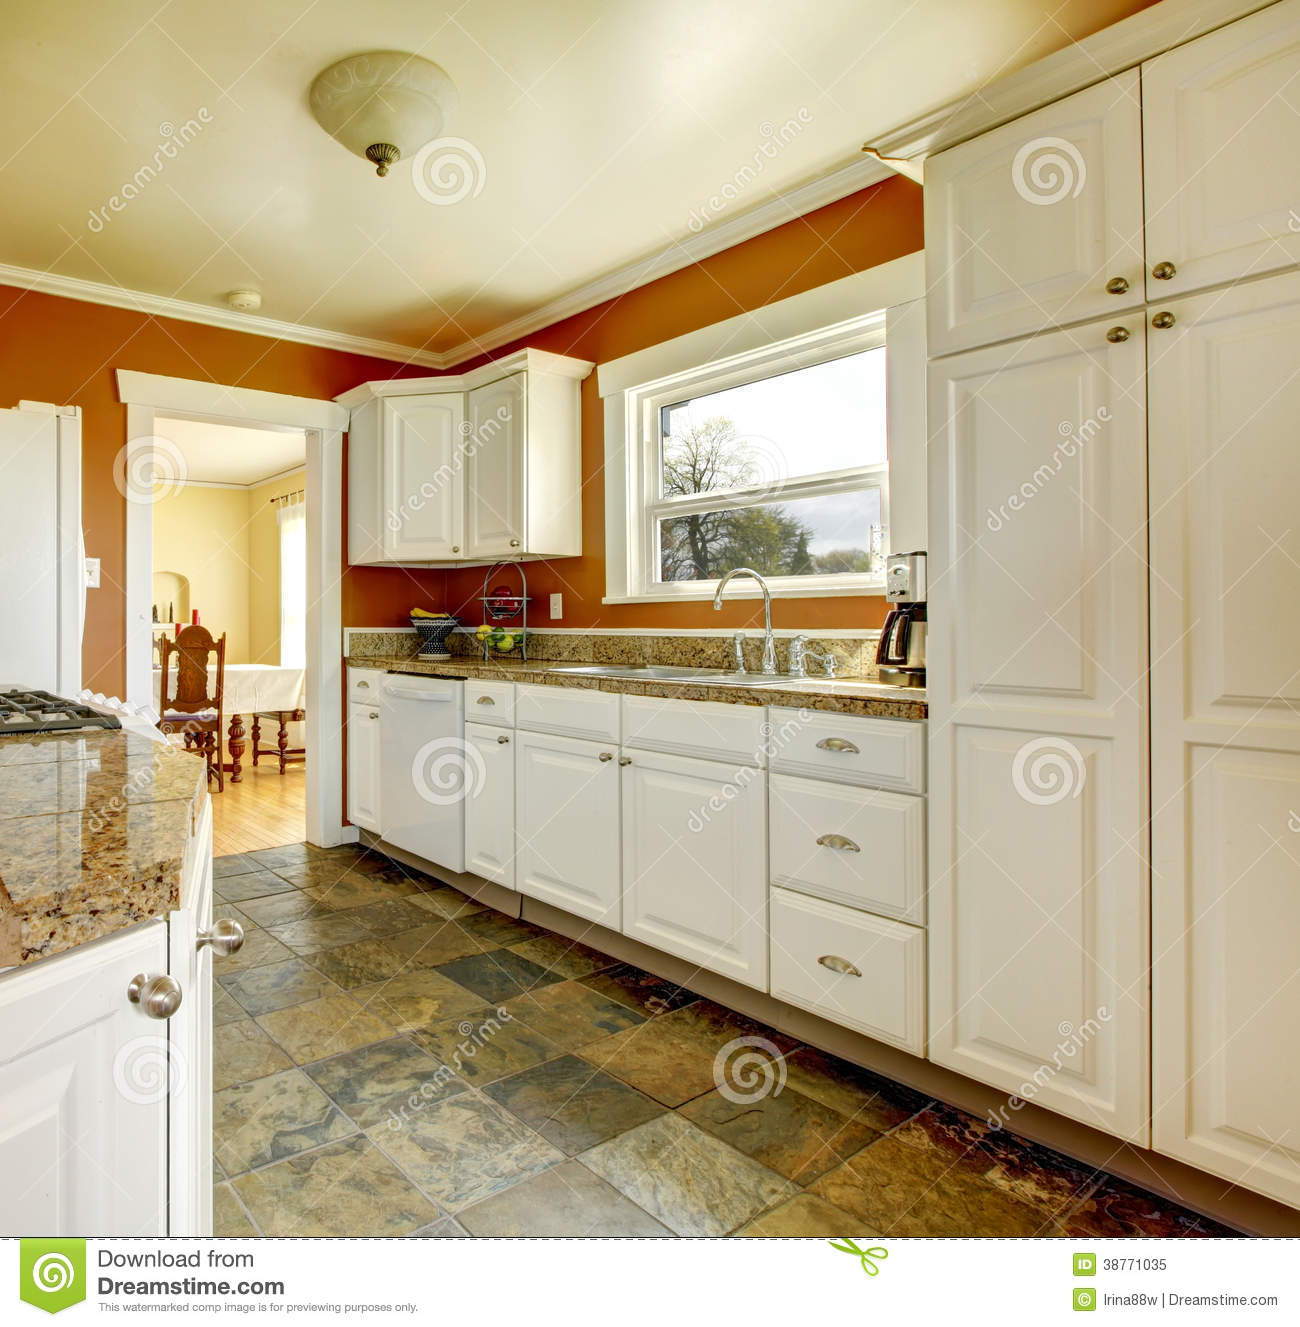 Orange kitchen room with white cabinets stock image for Kitchen walls with white cabinets